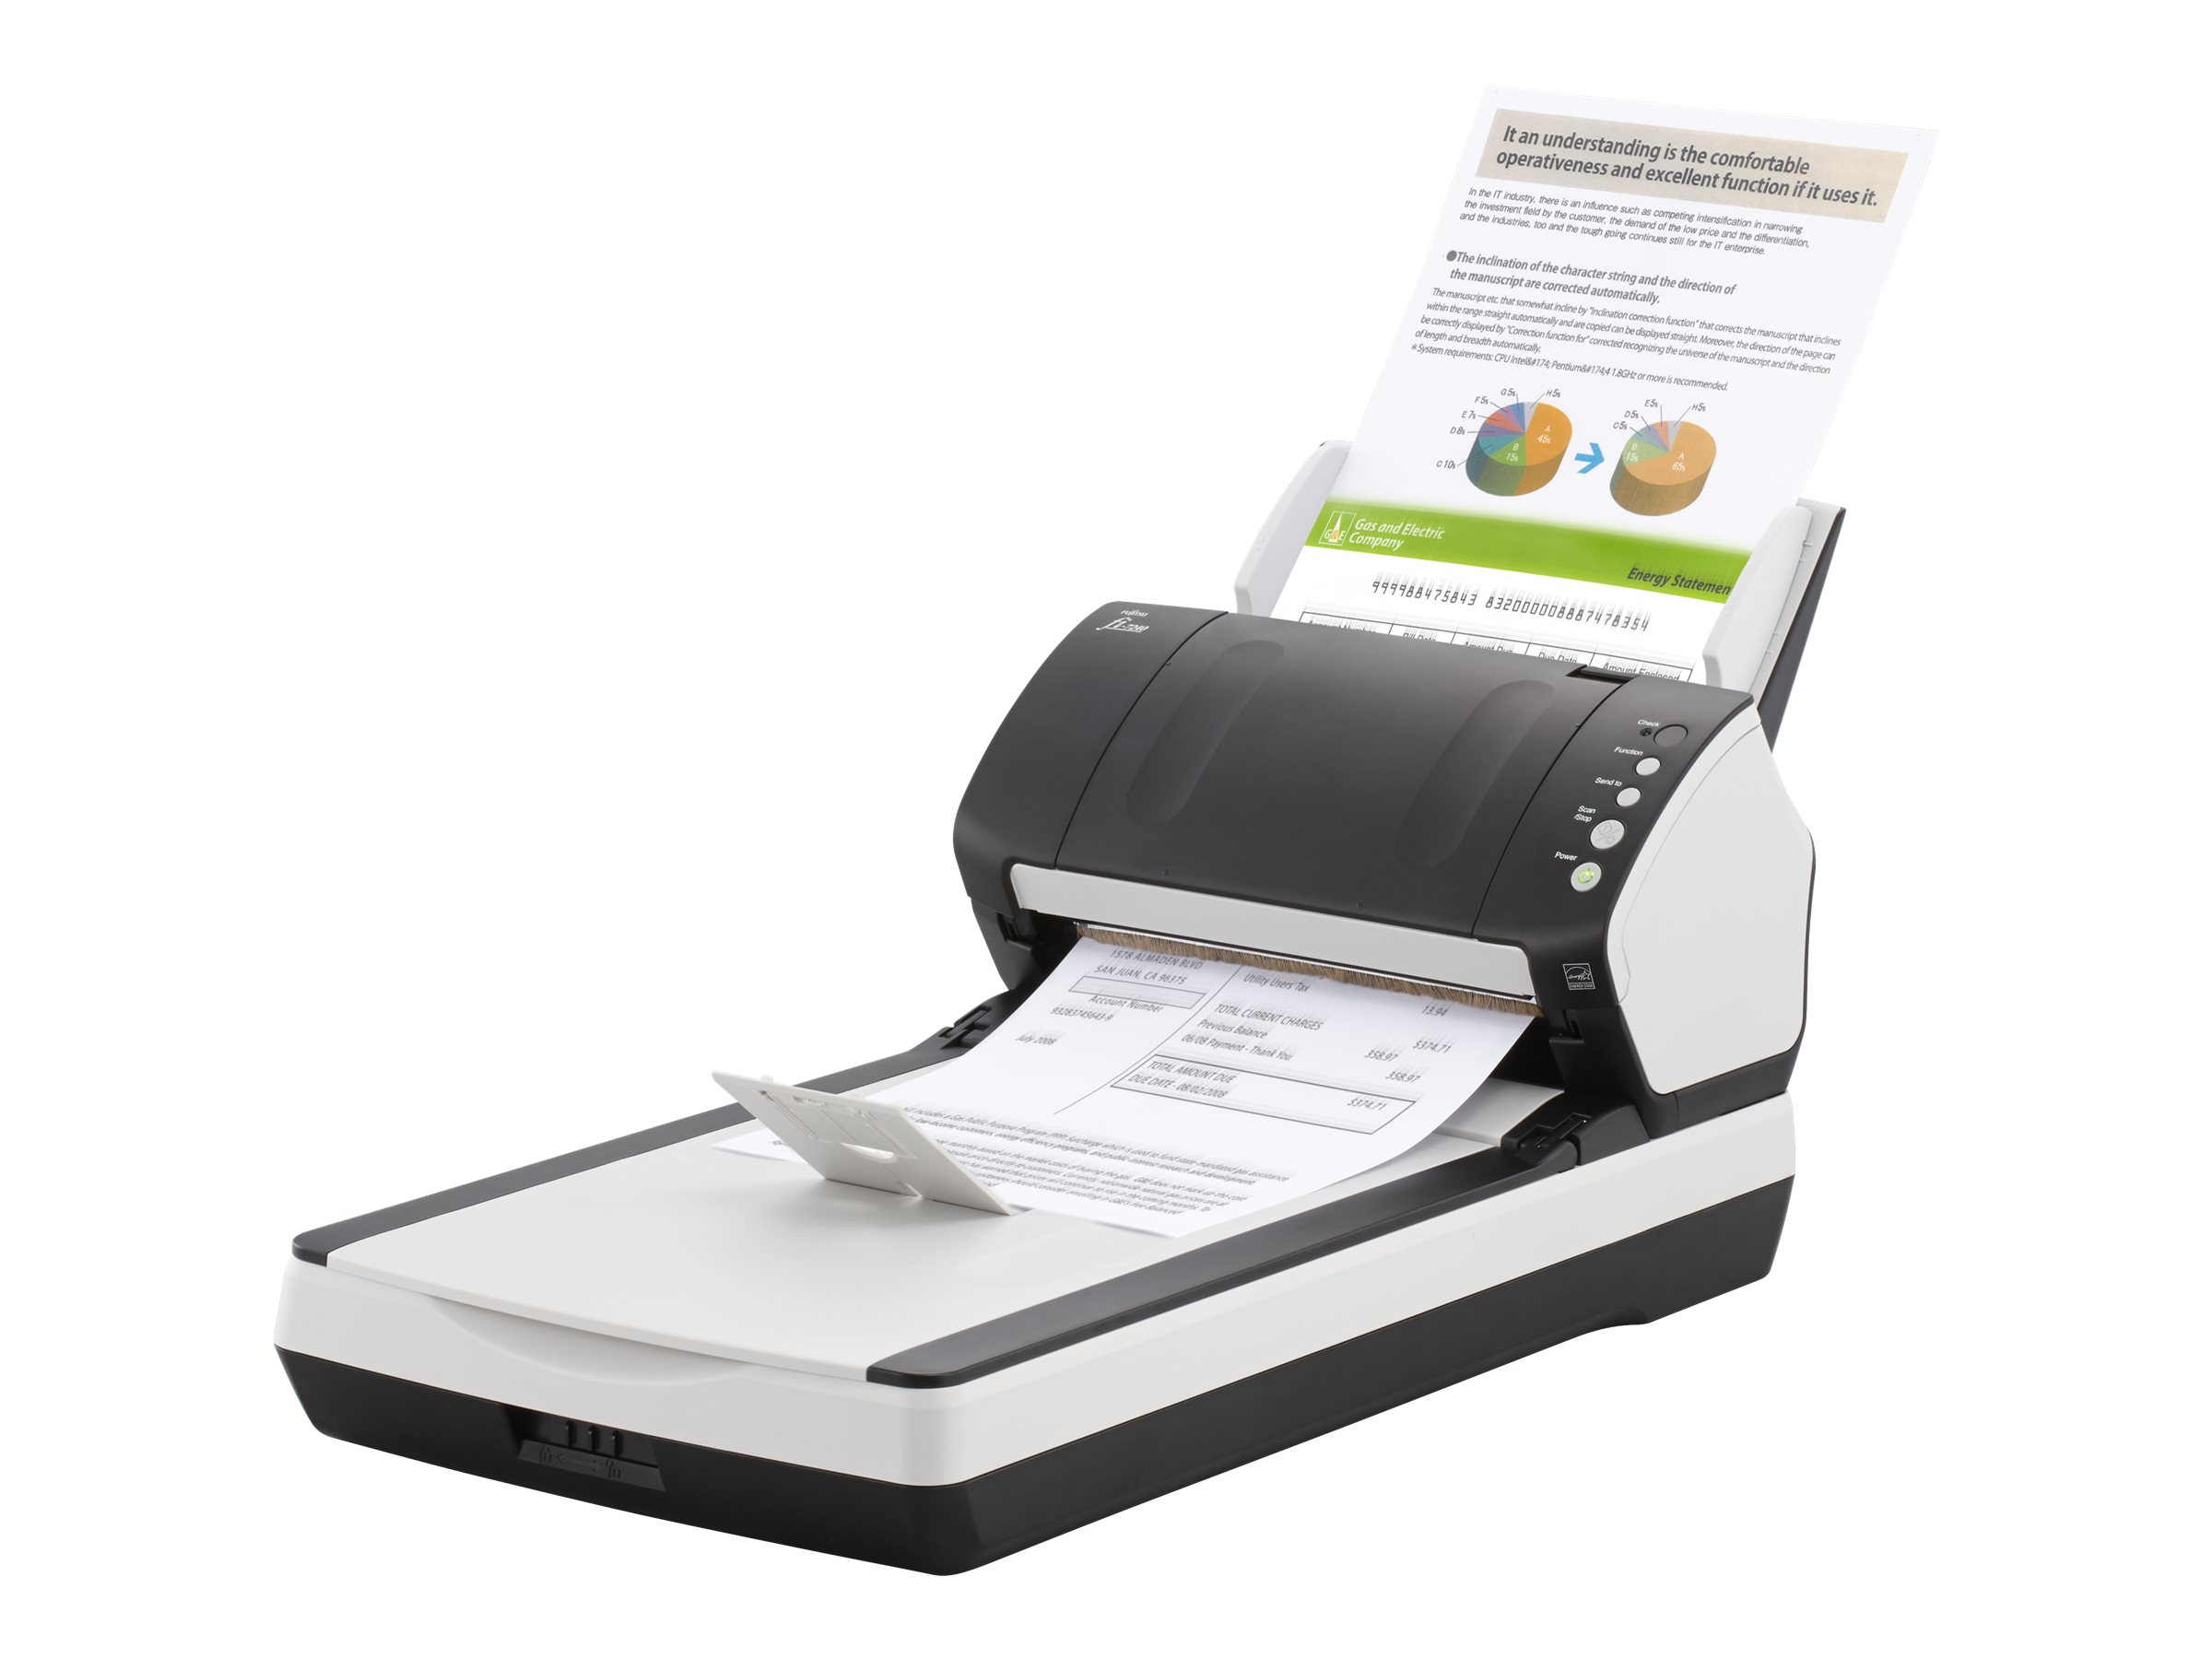 FI-7240 DOCUMENT SCANNER Includes PaperStream IP (TWAIN